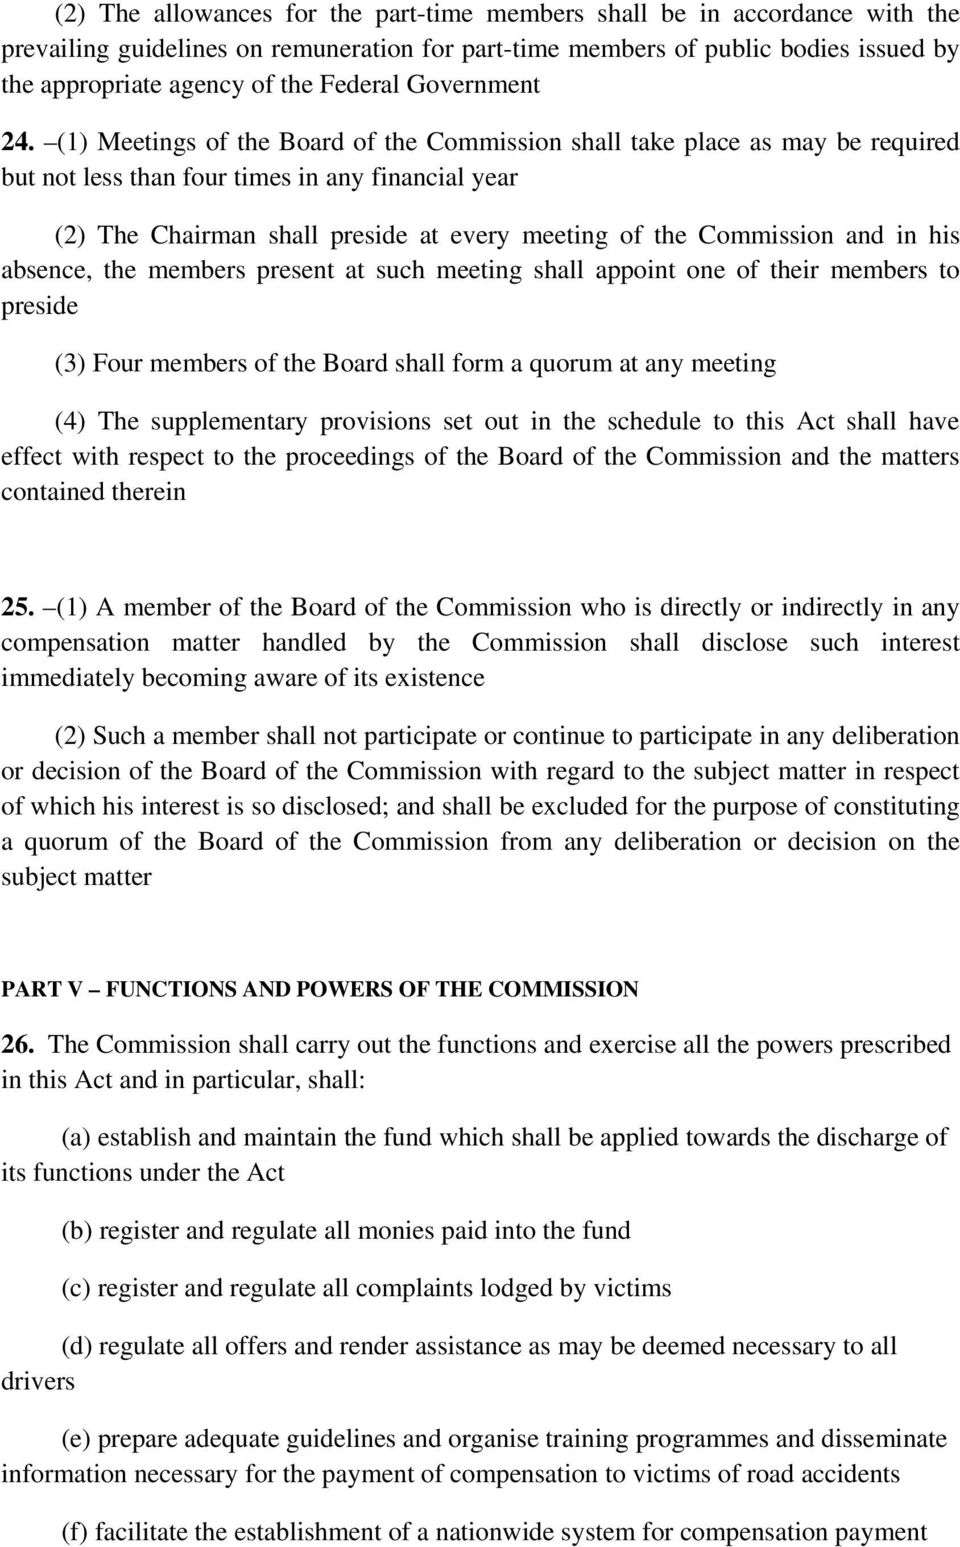 (1) Meetings of the Board of the Commission shall take place as may be required but not less than four times in any financial year (2) The Chairman shall preside at every meeting of the Commission